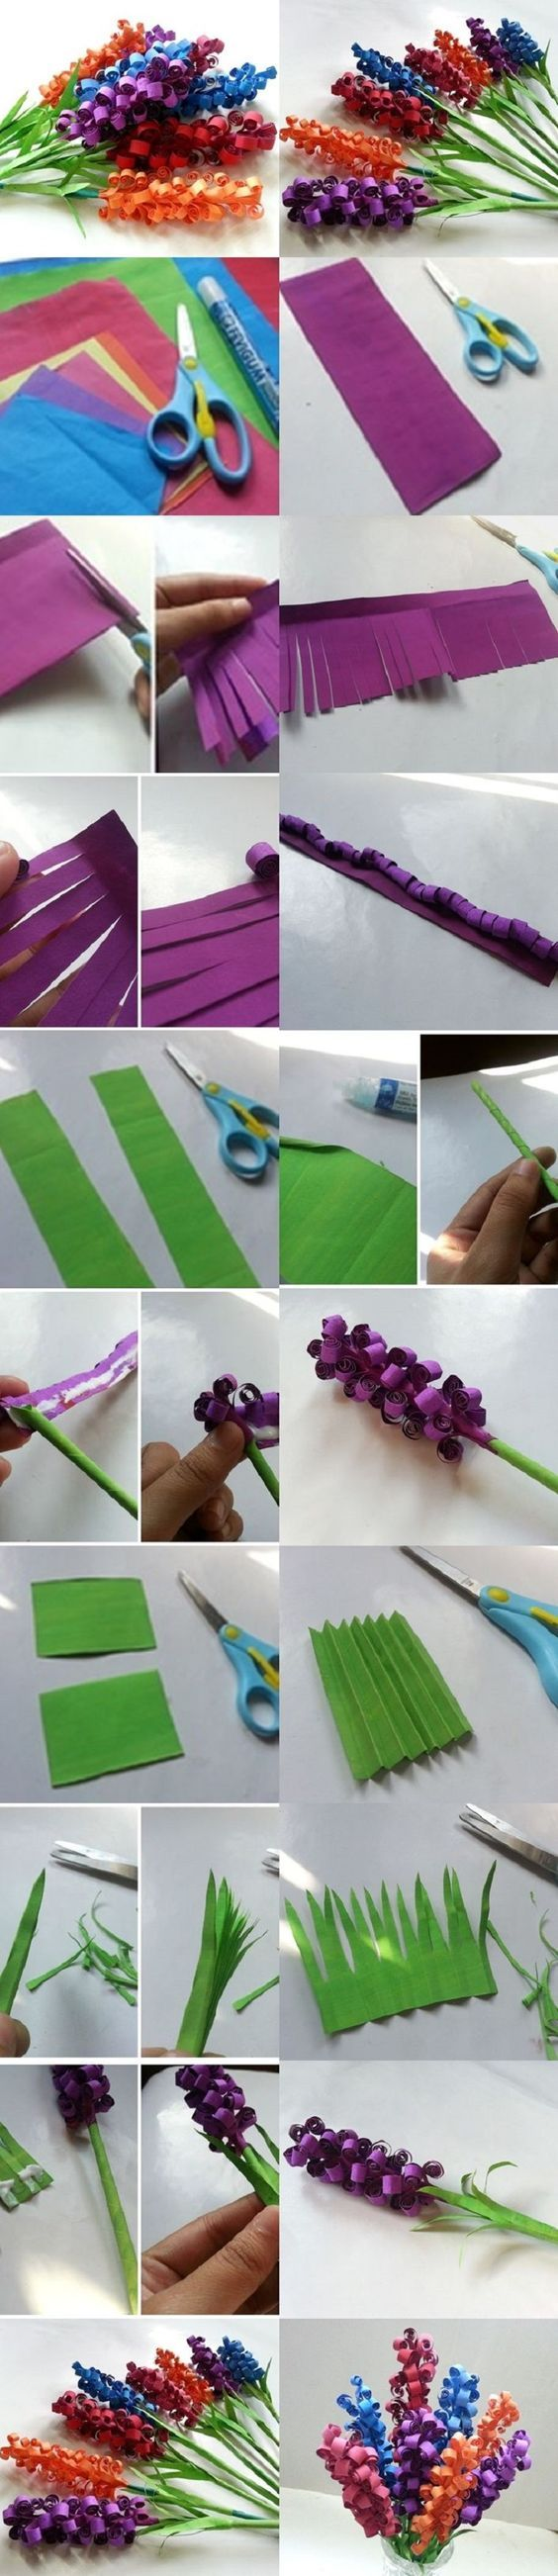 DIY Swirly Paper Flowers: 17 blossoming DiY spring decorating tutorials | from Wonderful DiY --- Easy tutorial for how to make paper flowers that look like hyacinths.